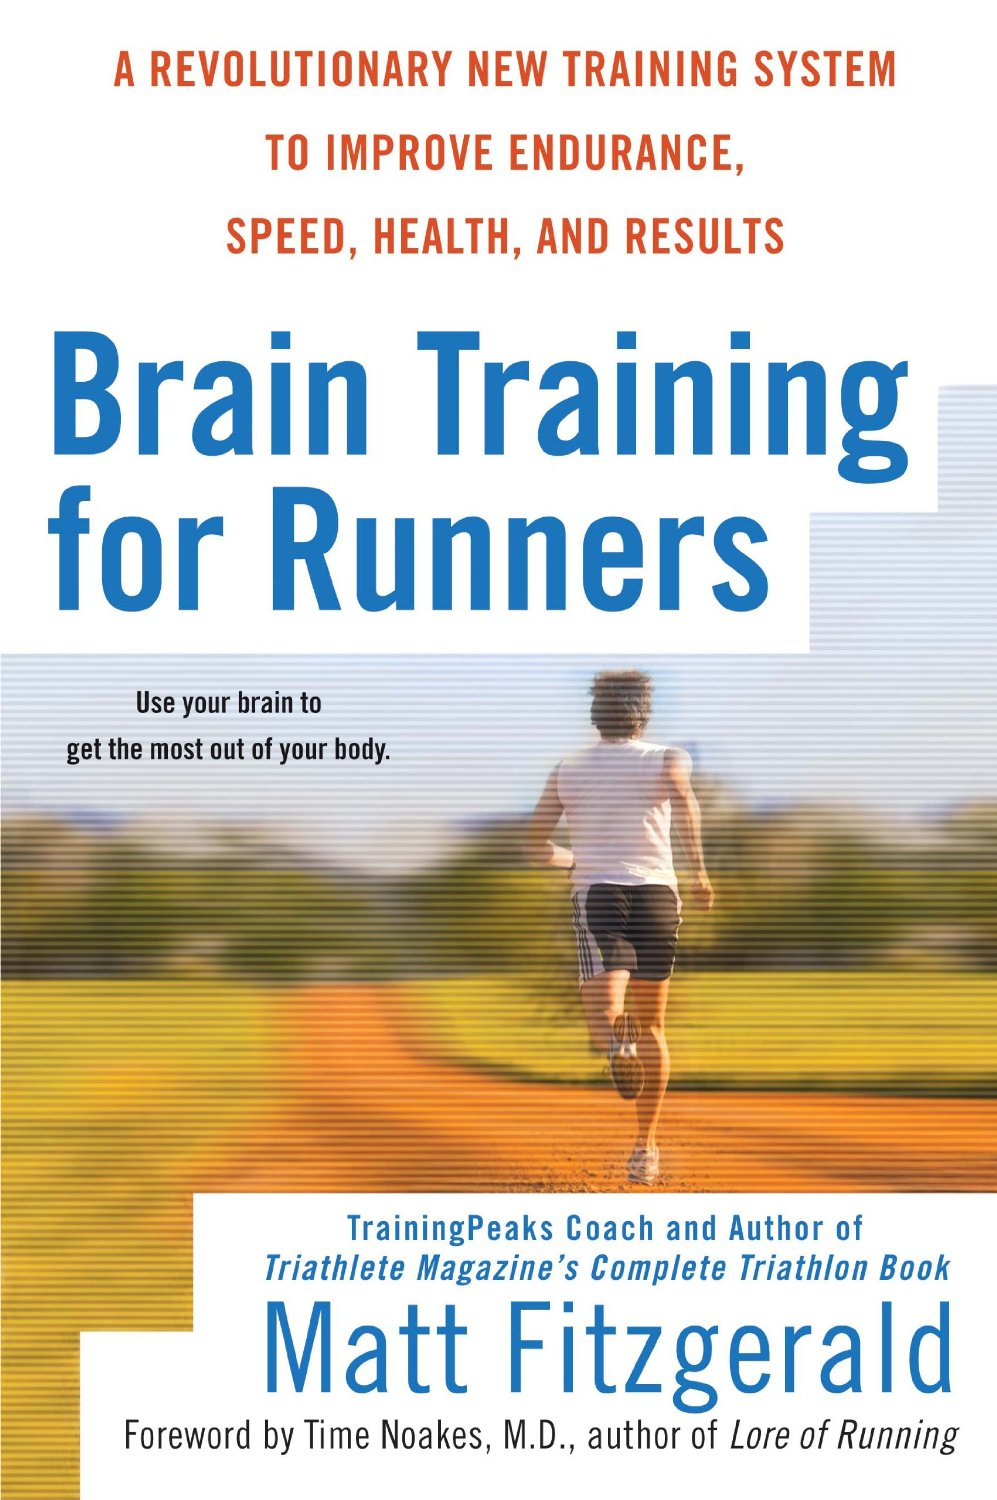 Brain Training For Runners: A Revolutionary New Training System to Improve Endurance, Speed, Health, and Results free download